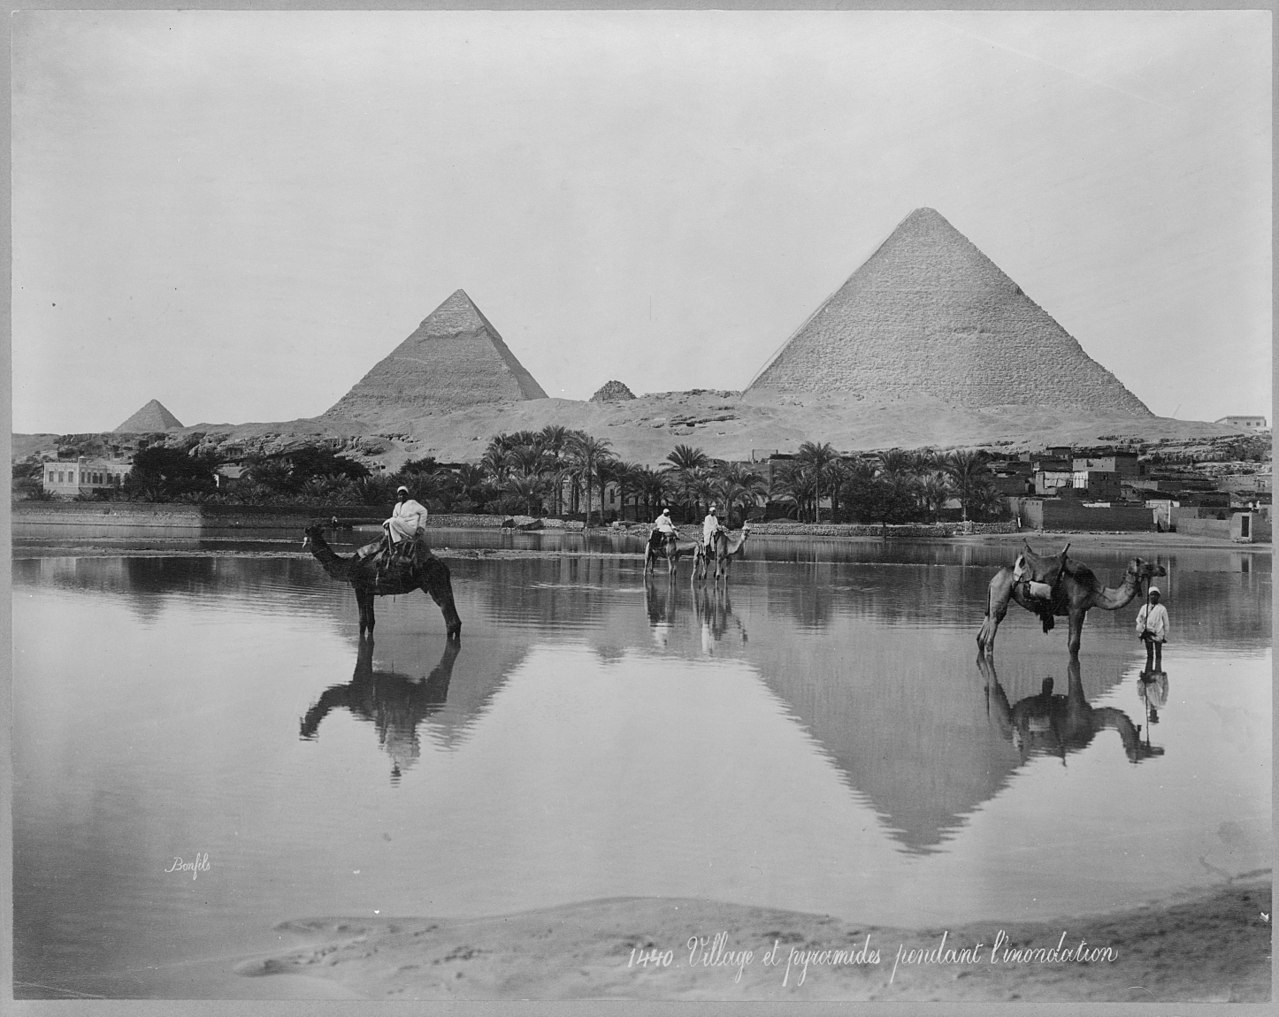 The Nile flooding, as seen in this photo from the 1890s